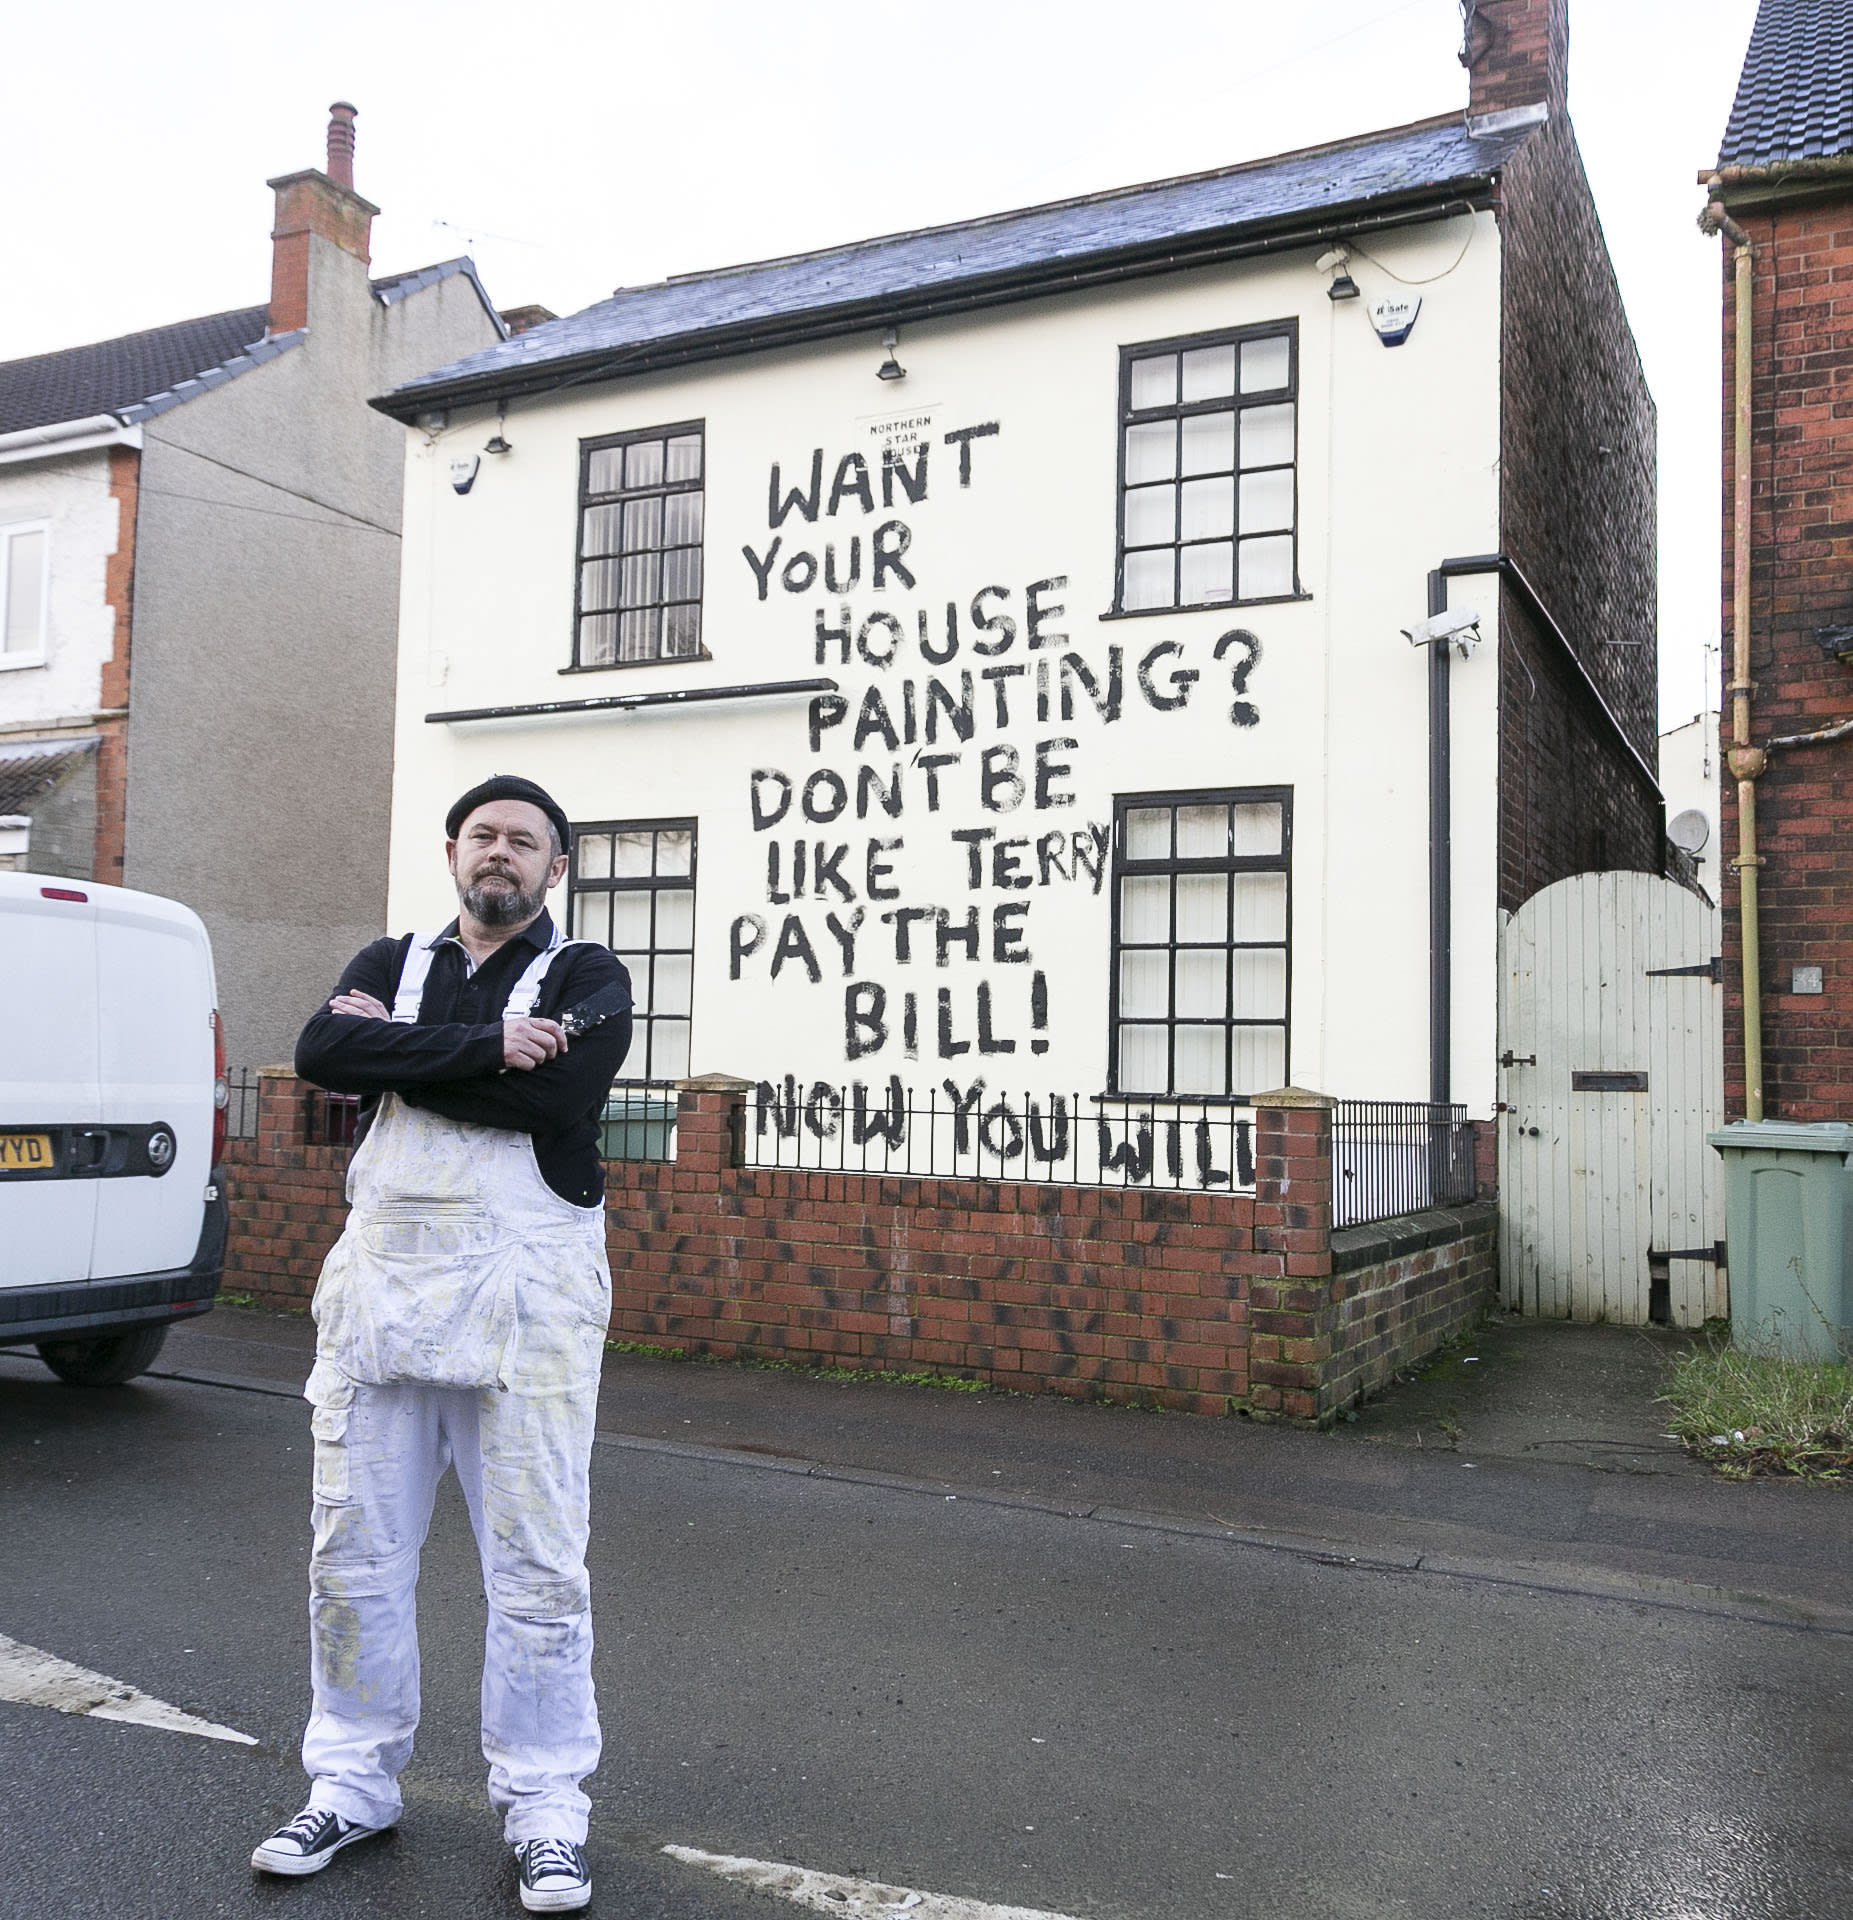 Painter and decorator, Dean Reeves 50, painted black graffiti on a house accusing the owner of not paying him, pictured in Bolsover in Derbyshire, January 17 2020. SWLEgraffiti